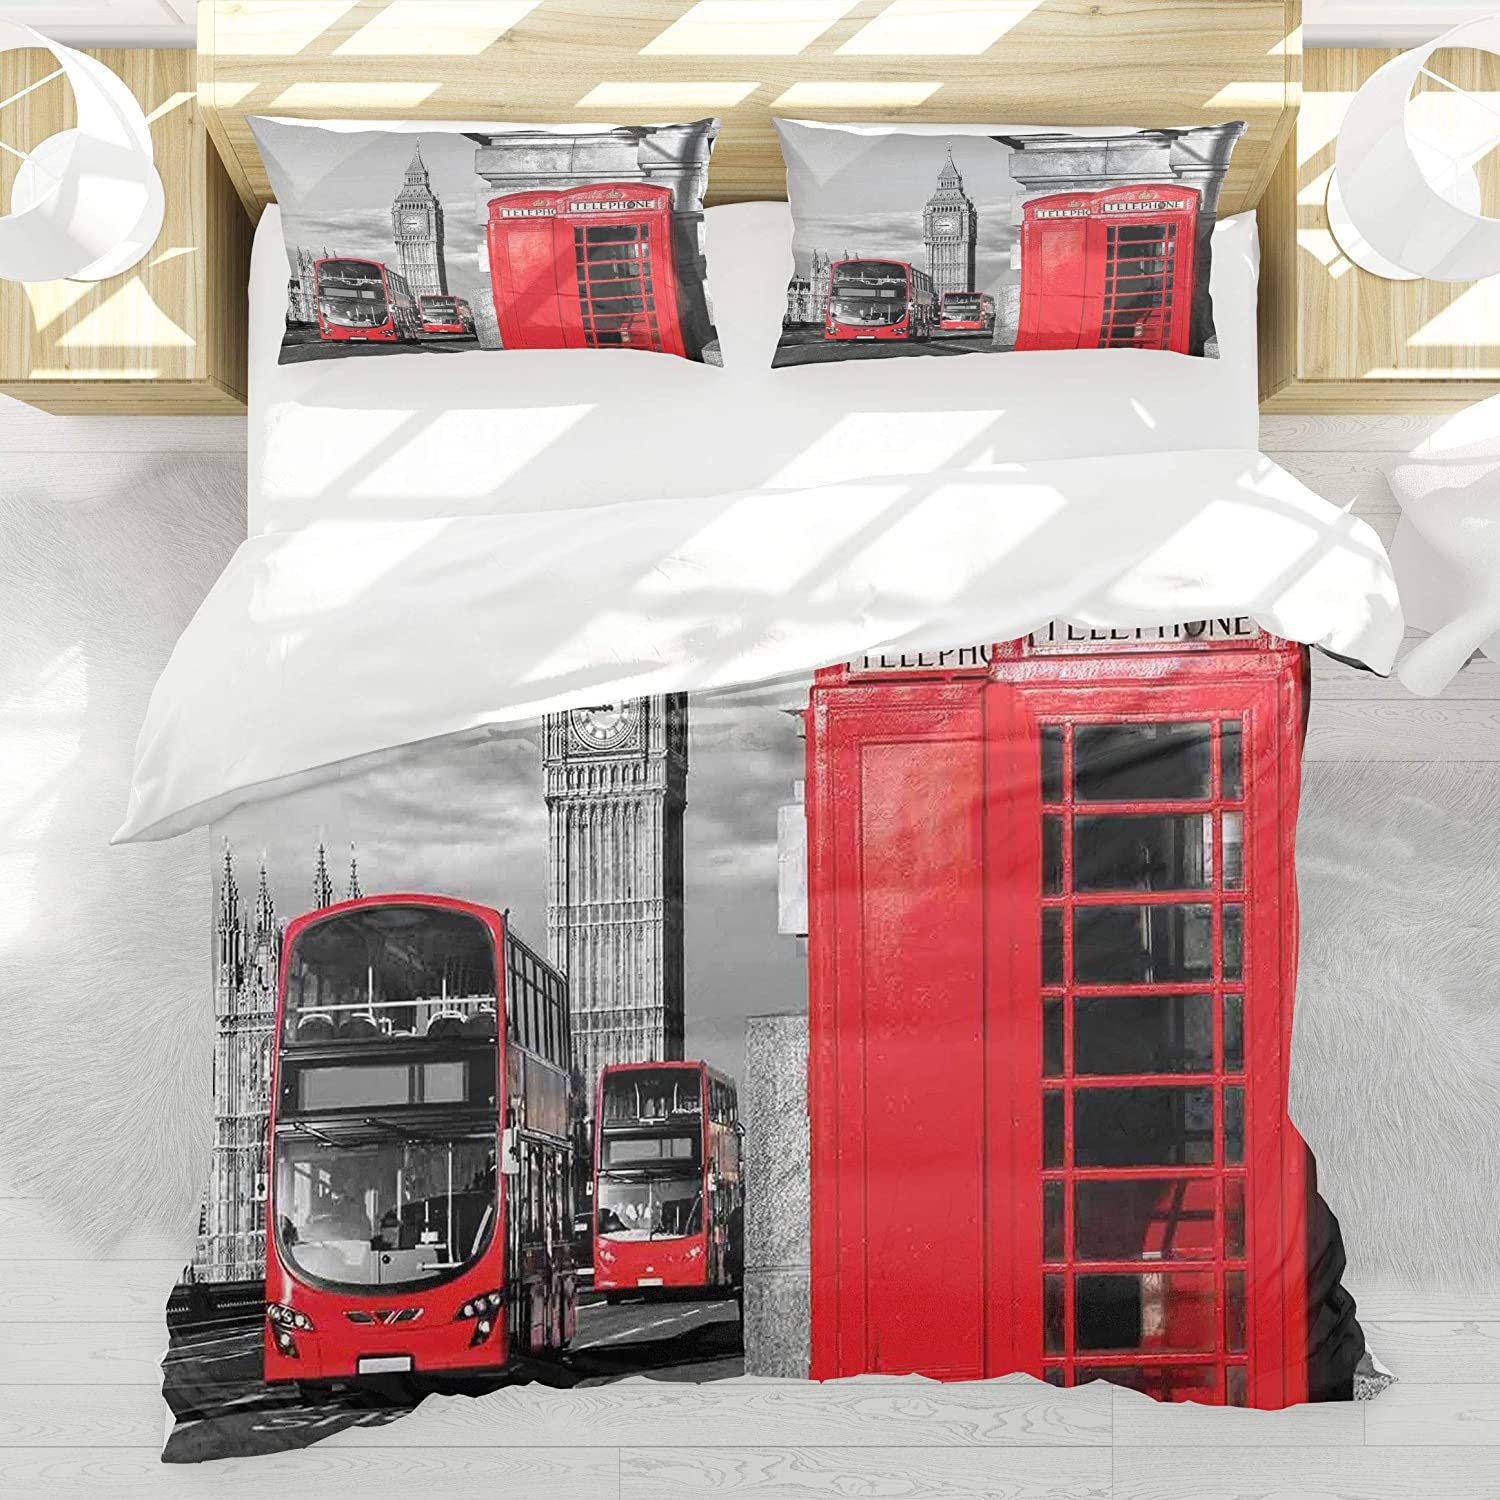 BEDNRY Bedding Set,London London Telephone Booth in The Street Traditional Local Cultural Icon England UK Retro Theme,Decorative 3 Pieces,1 Duvet Cover with 2 Pillow Shams,Queen Size